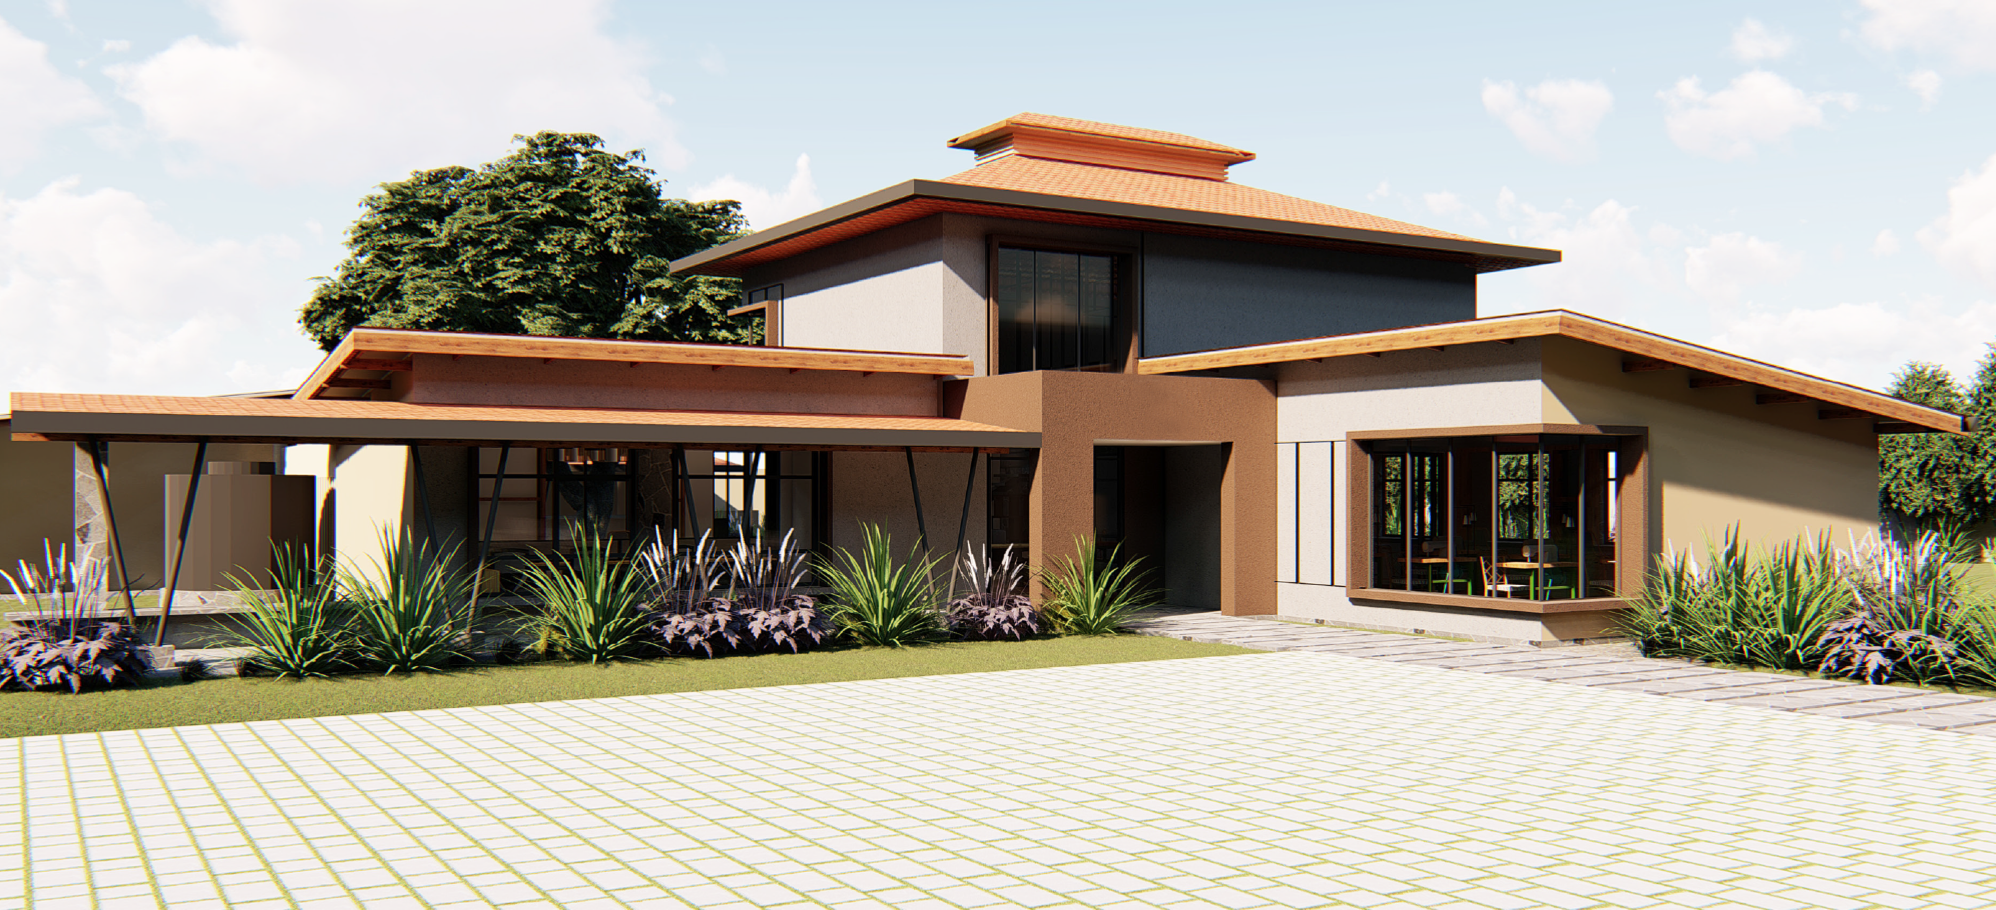 ARTISAN WORKSPACE - Read more about the vision, architecture plans, and collaborative process of creating the first multi-purpose Artisan Workspace in Gulu, Uganda.Architectural Design by Emma Mugisha (Kampala, Uganda)